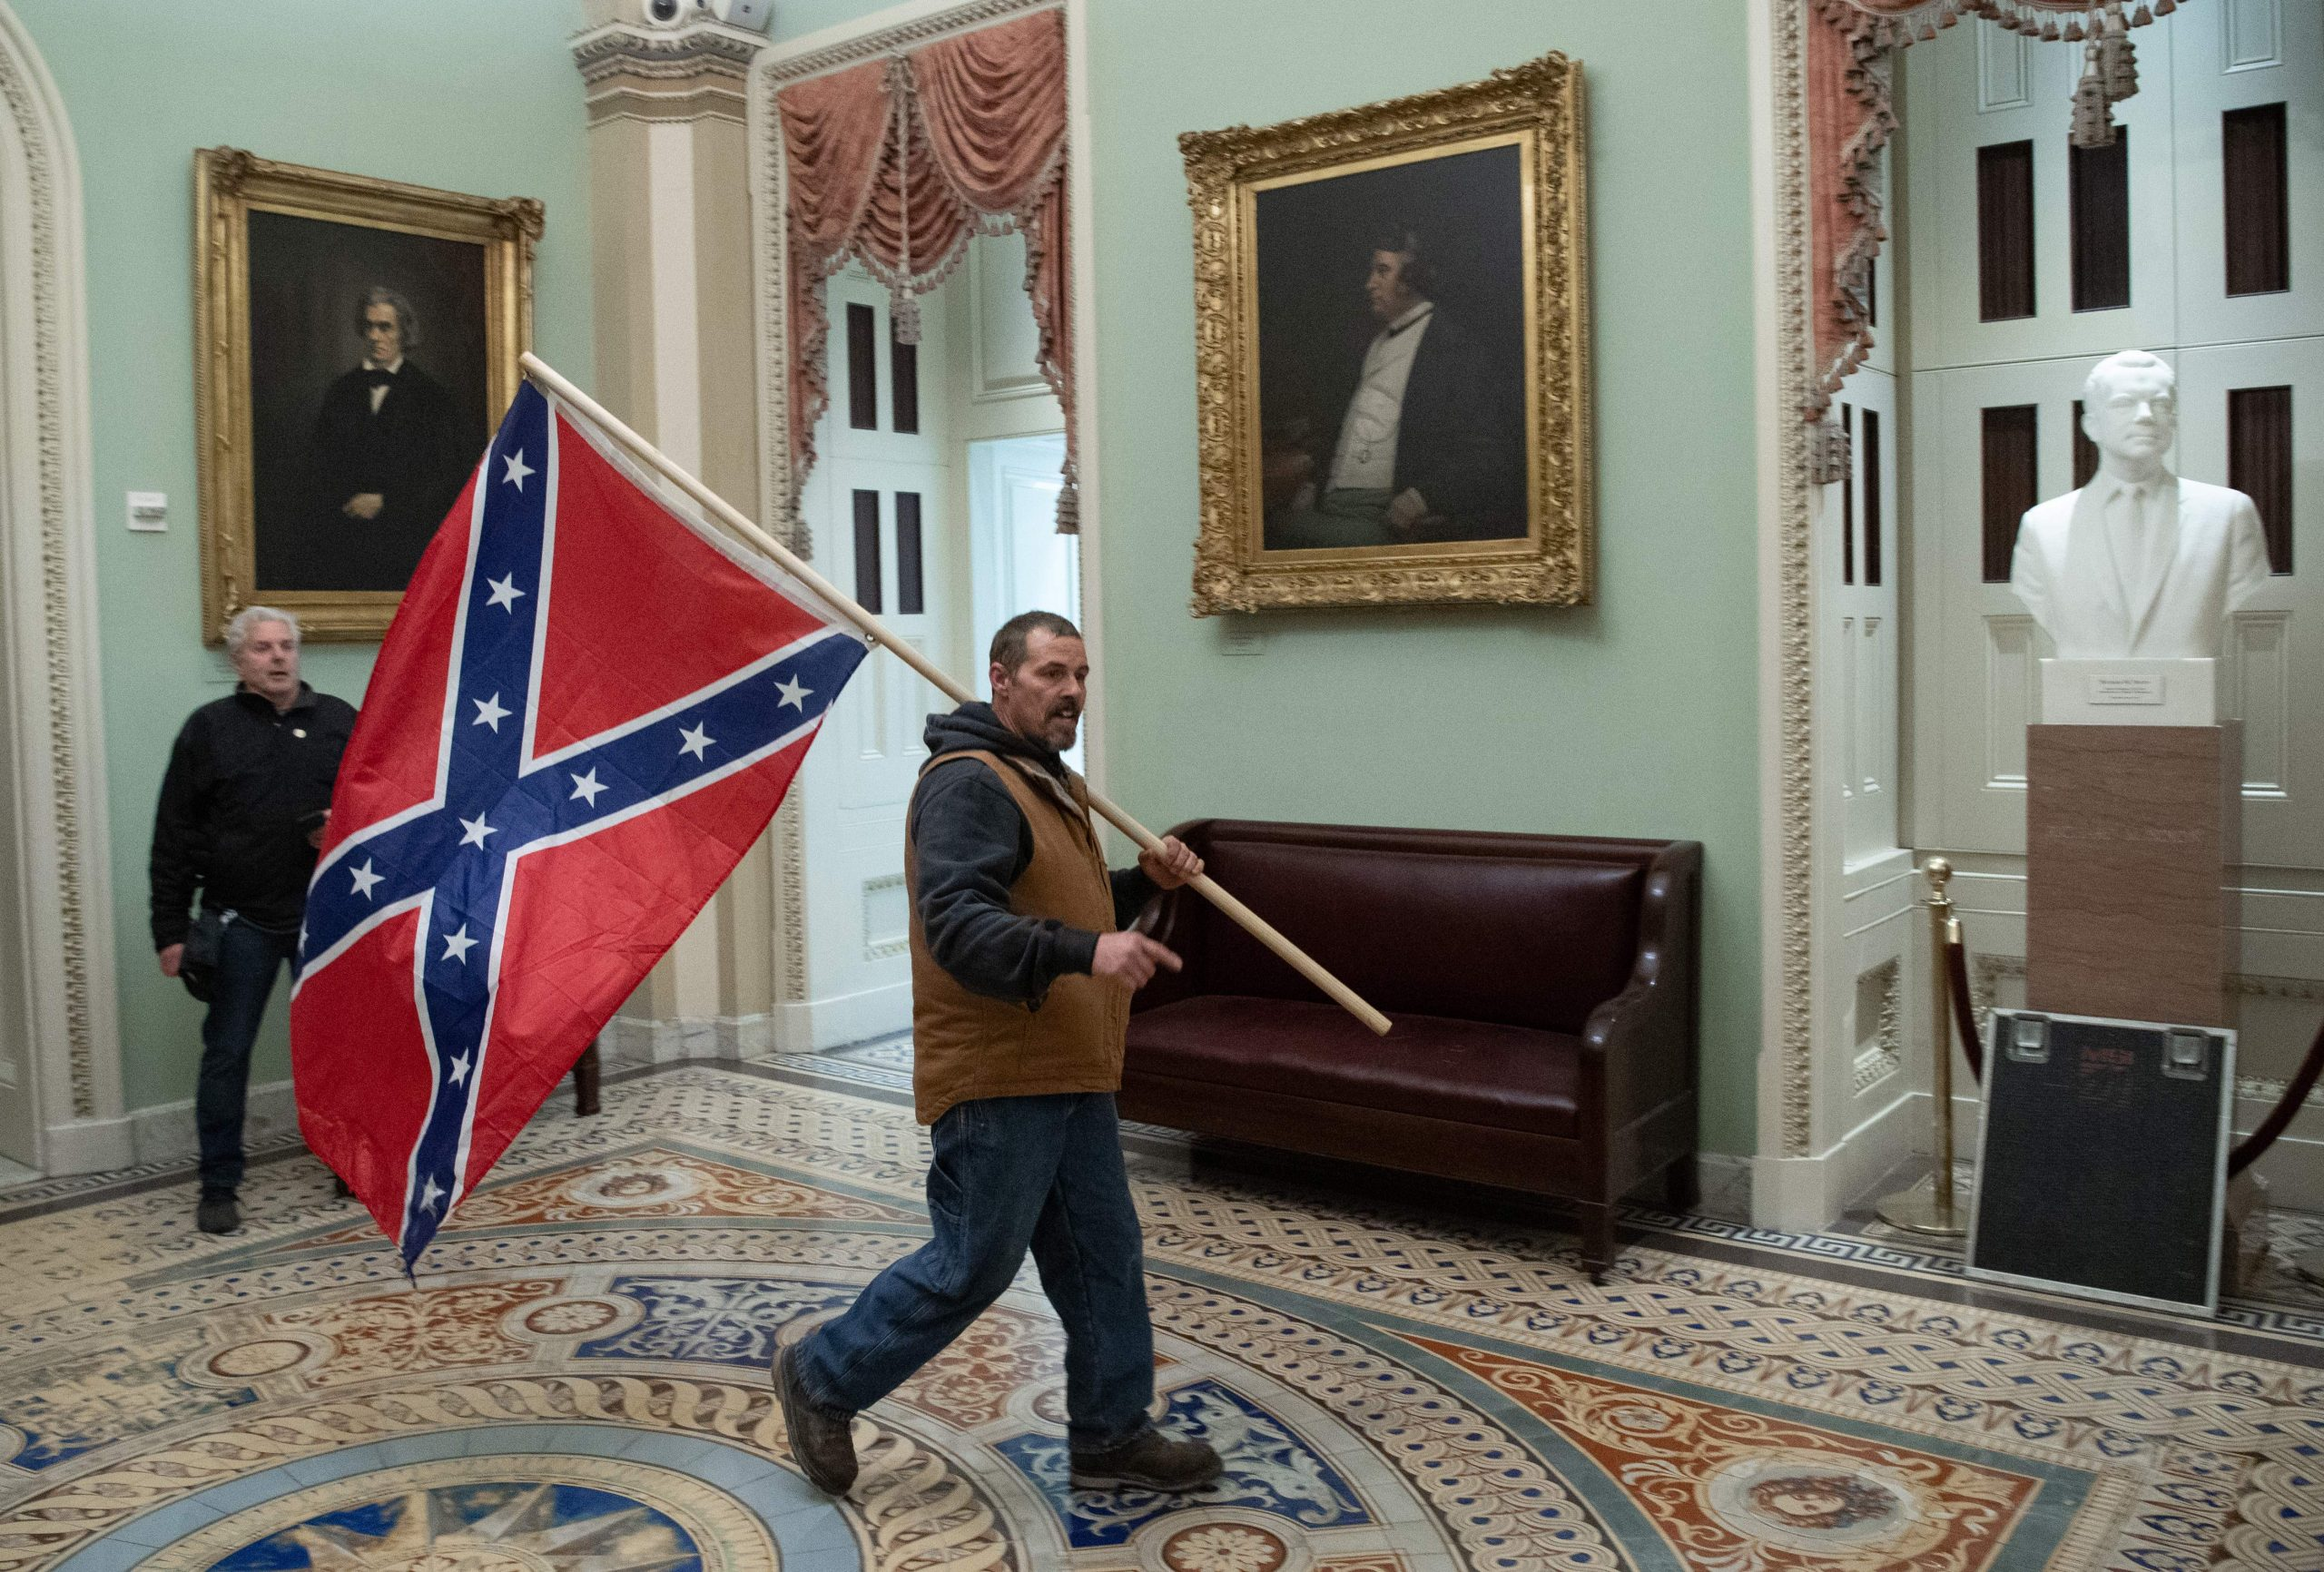 Man who carried Confederate flag to Capitol during riot indicted